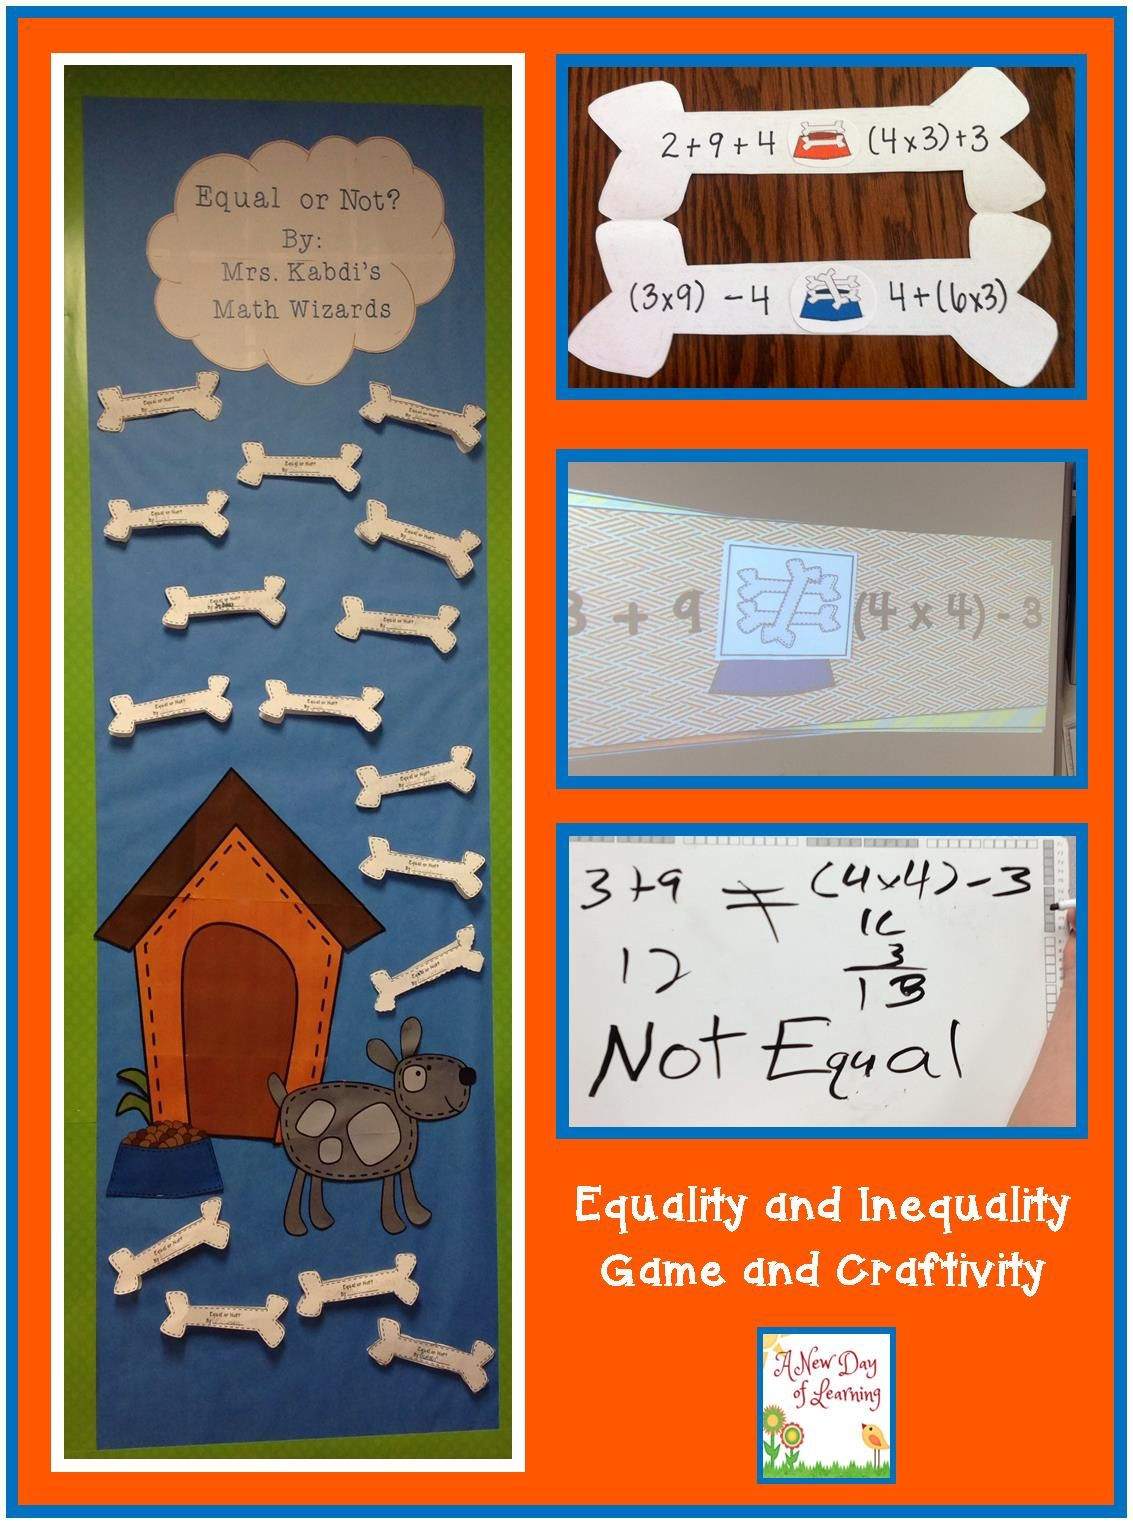 Fun Way To Teach Equalities And Inequalities Game And